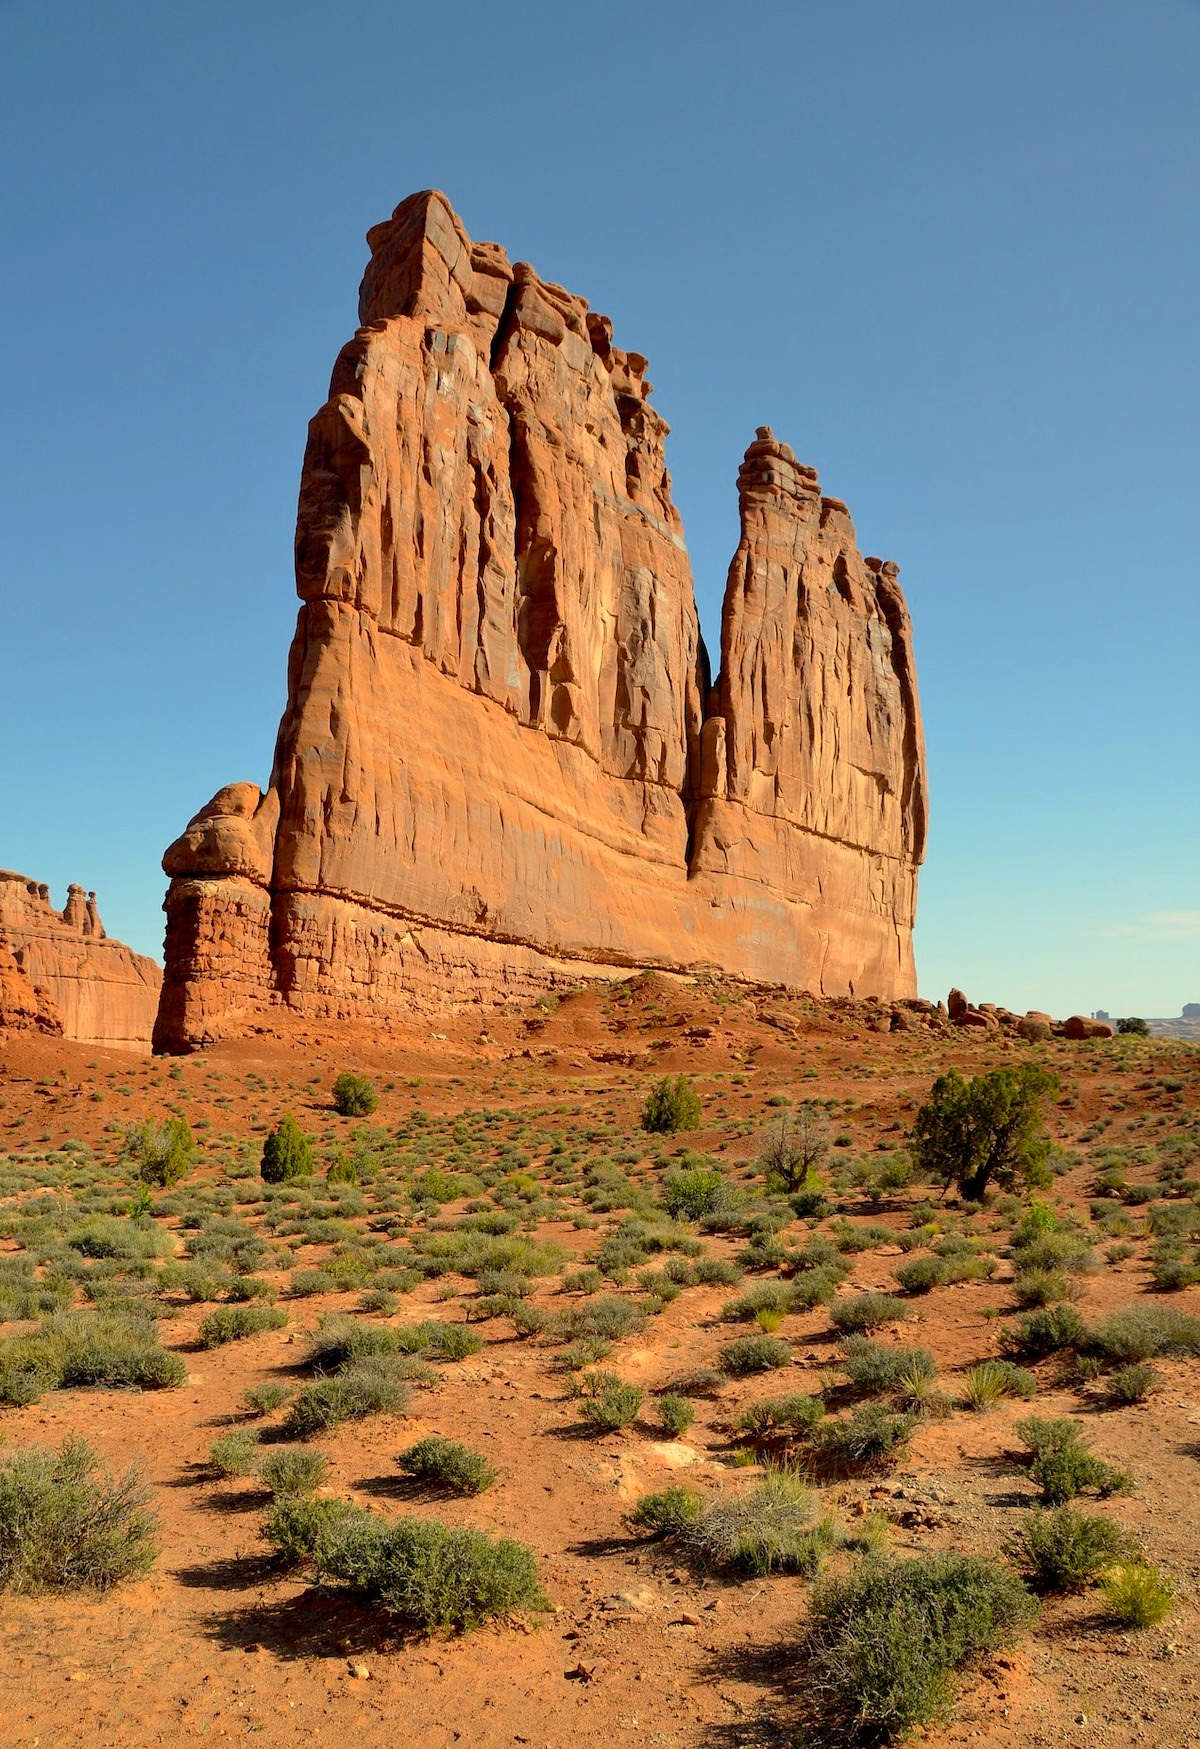 Arches national park the organ, arches national park best photography locations